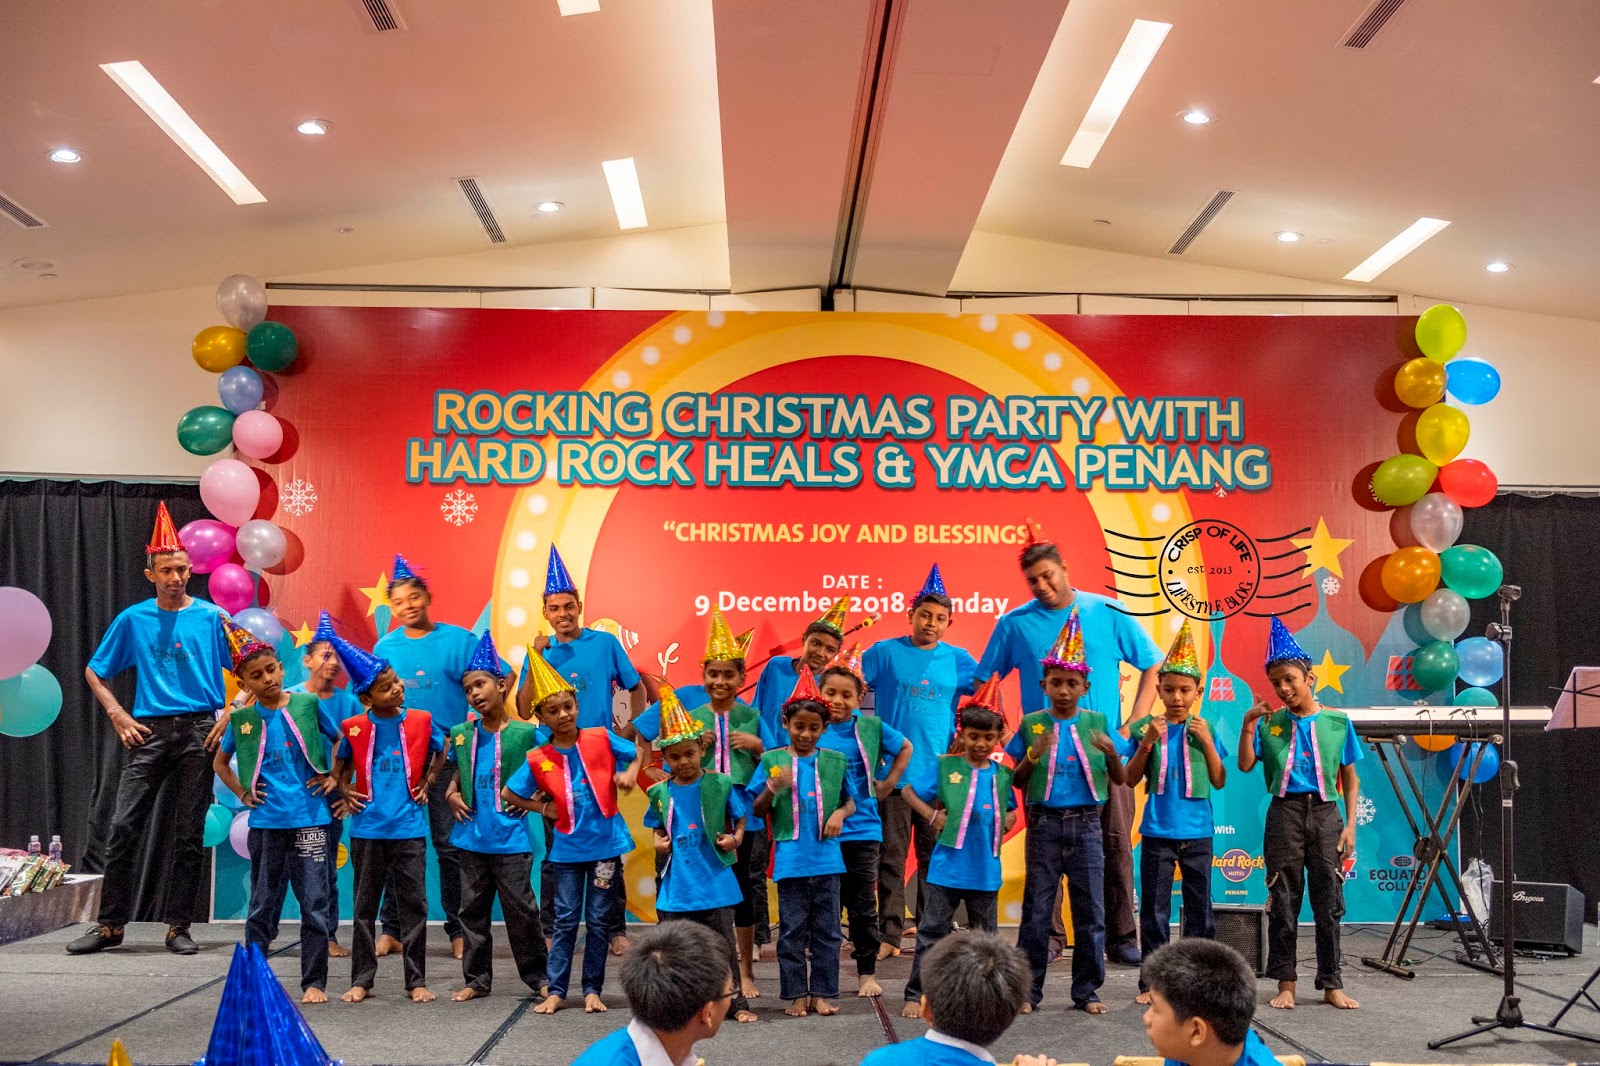 Rocking christmas Party with Hard Rock Heals & YMCA Penang